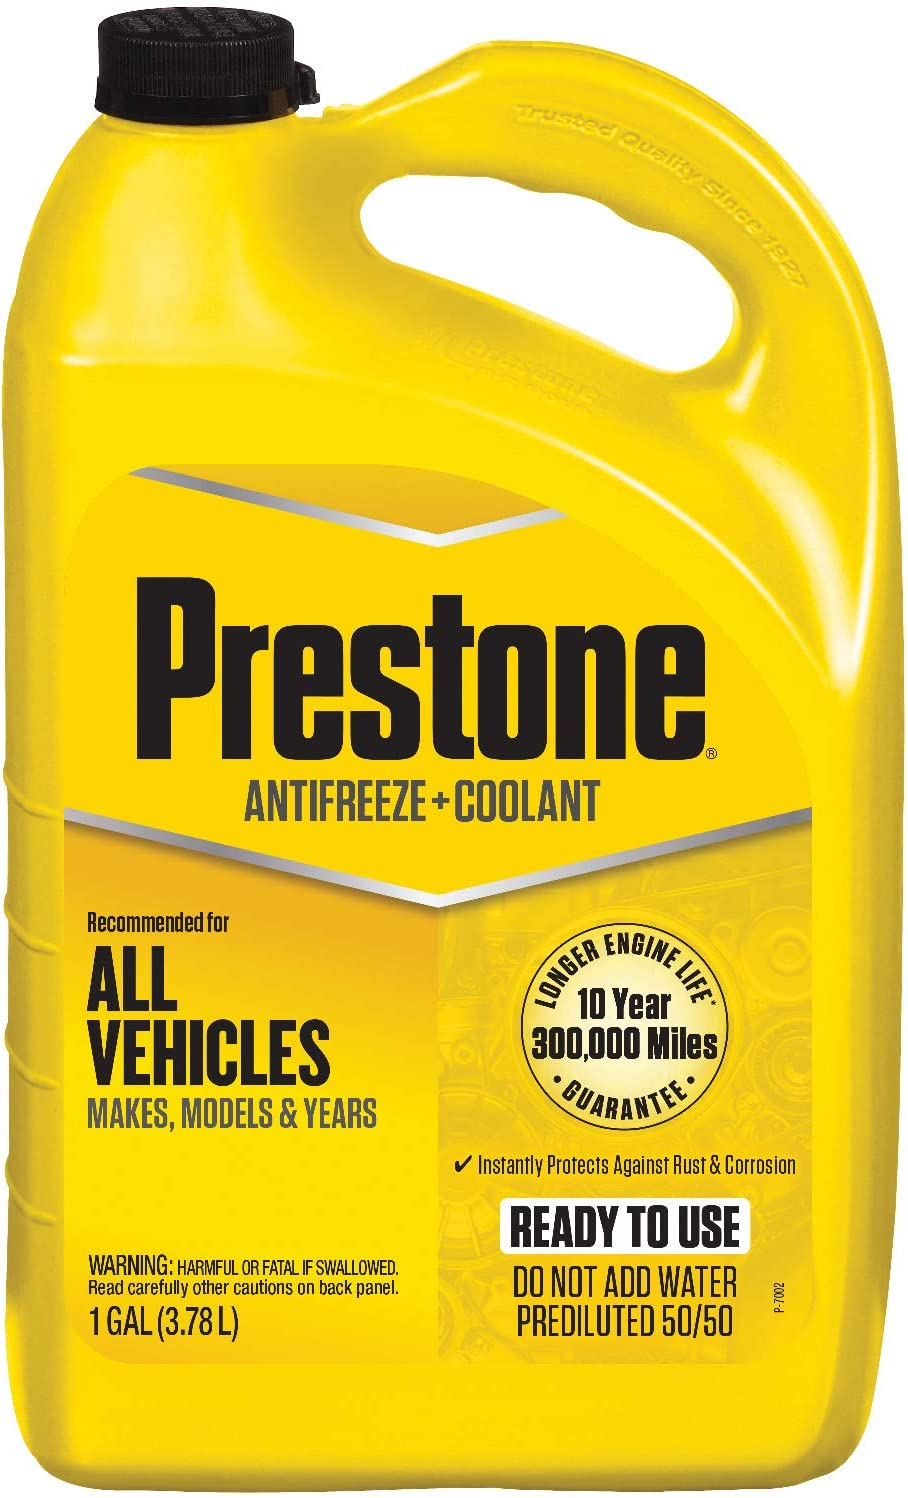 Don't miss the campaign Prestone 5% OFF AF2100-6PK Extended Life 50 Gallon 1 Antifreeze -